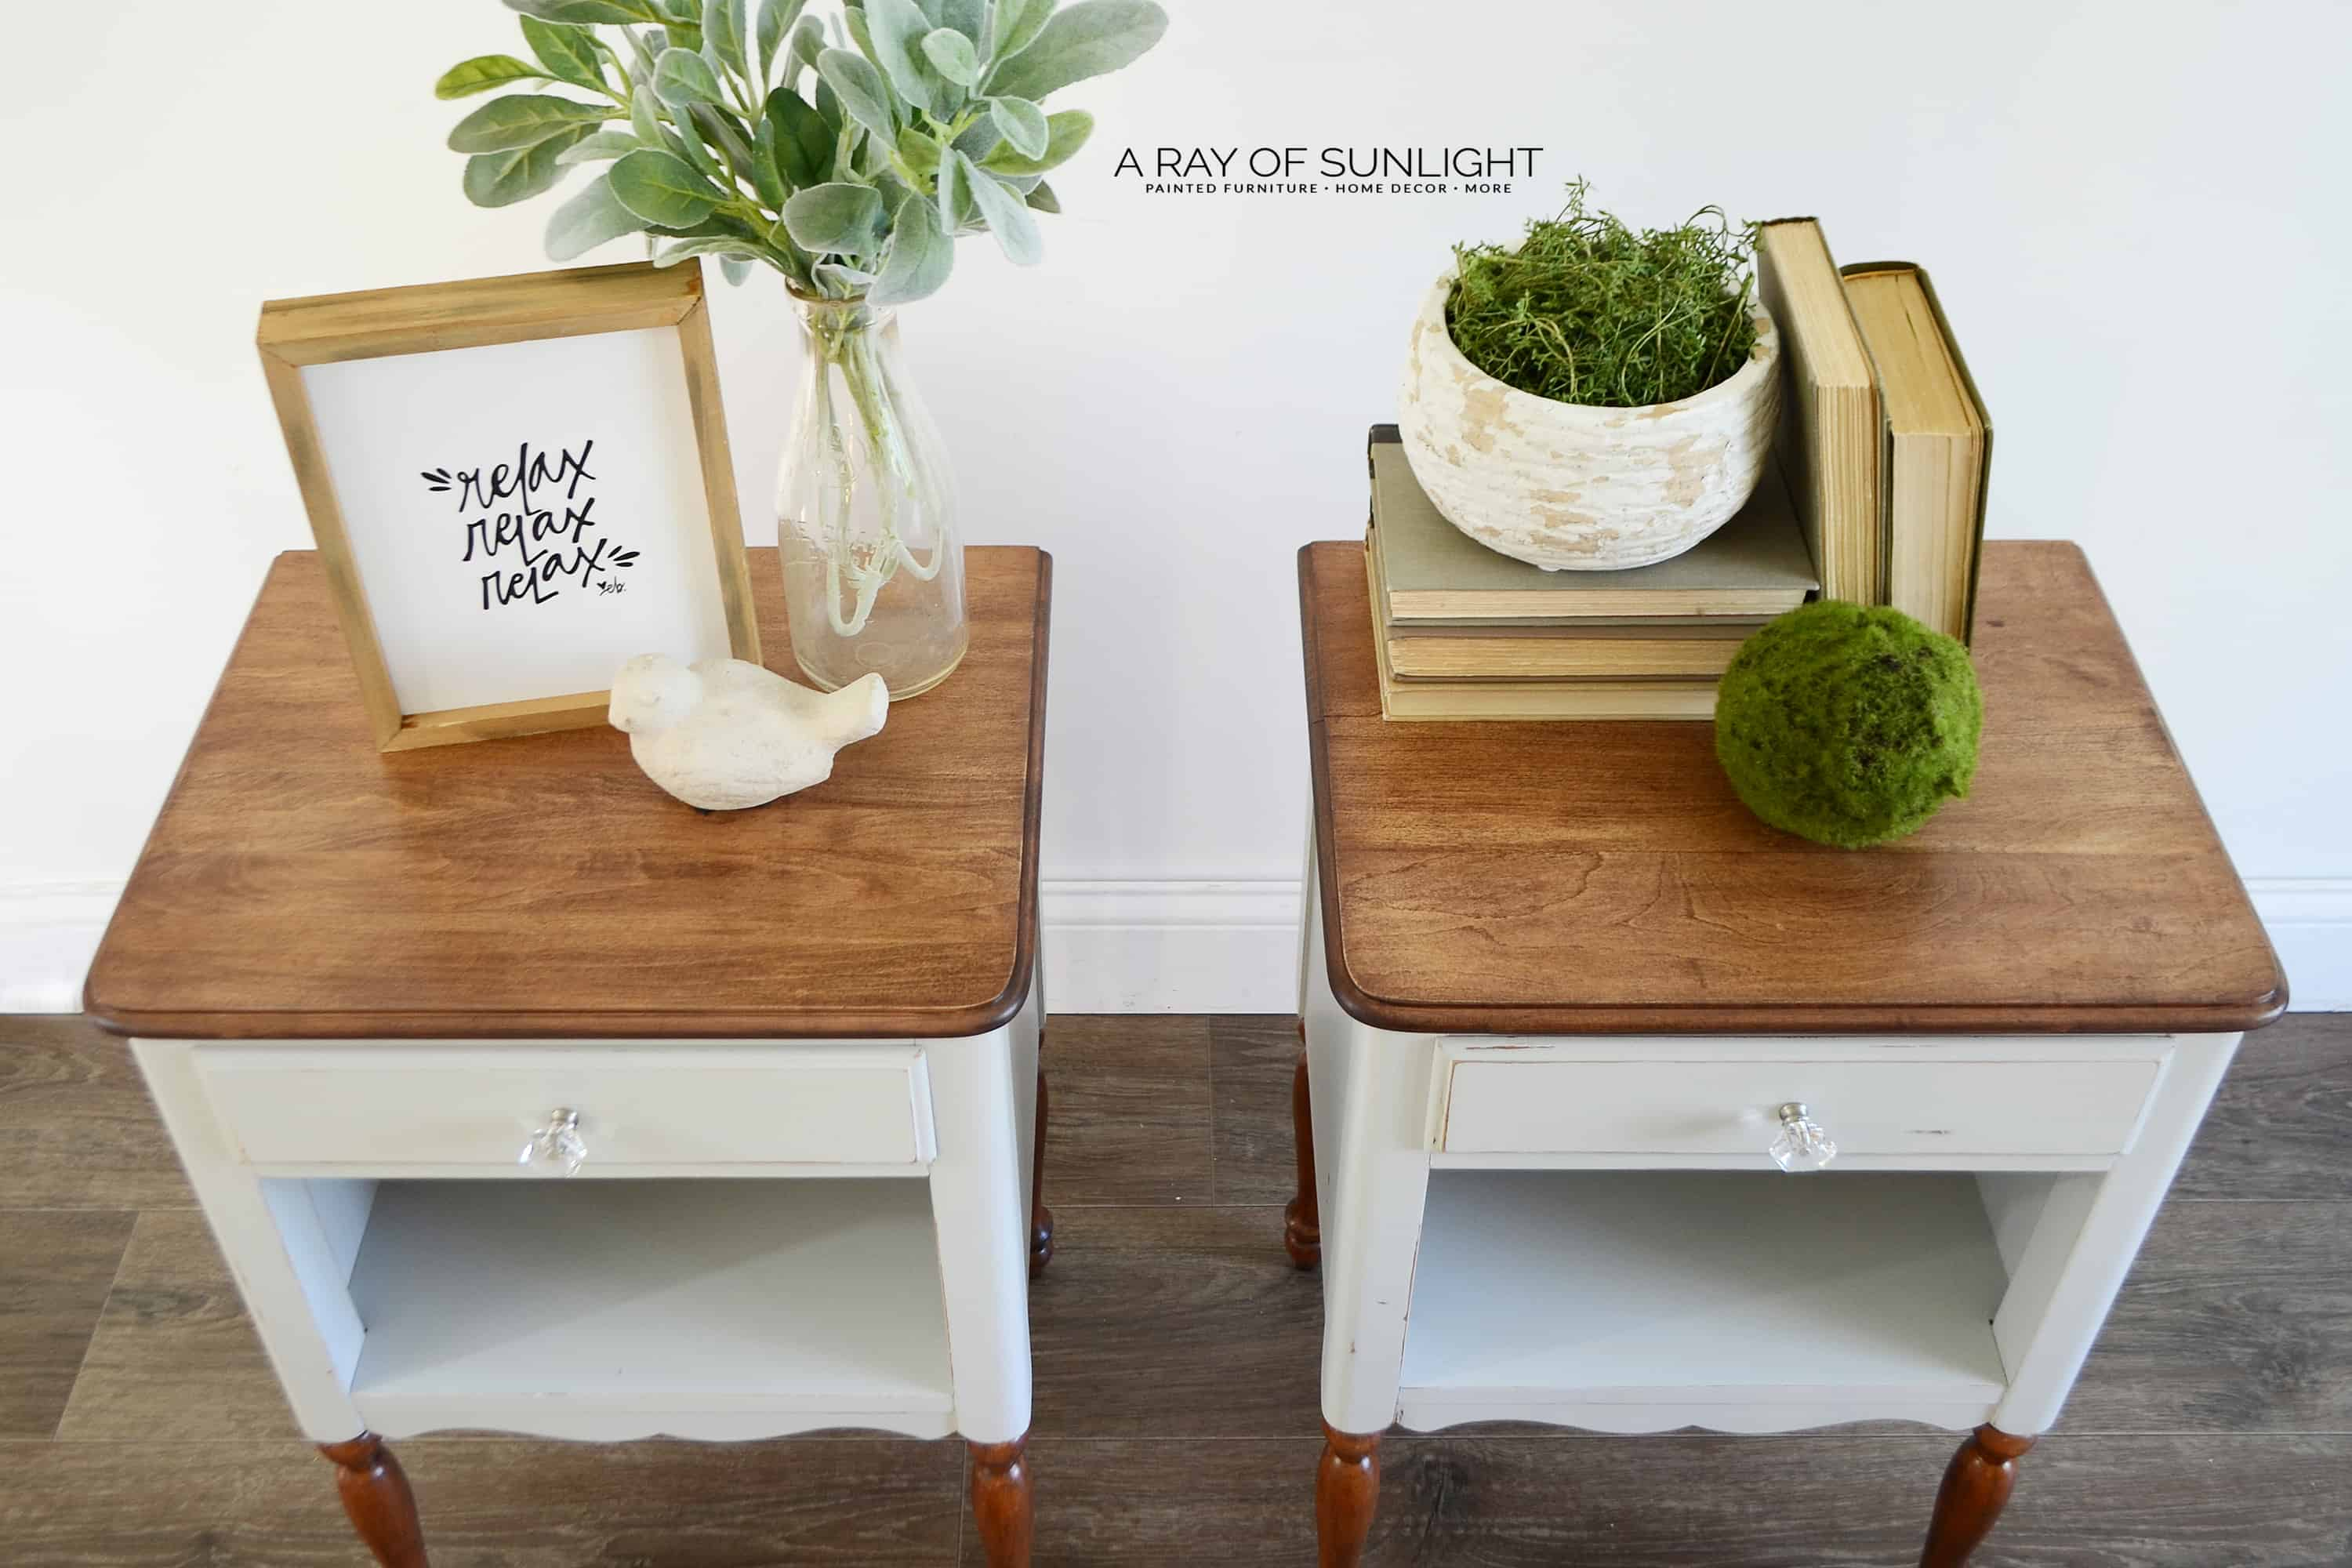 The Light Grey Farmhouse Nightstands by A Ray of Sunlight | These matching grey tall nightstands are adorable with their freshly stained legs and tops. I can see them in any bedroom or living room for extra storage! #paintedfurniture #farmhousefurniture #graytables #countrychicpaint